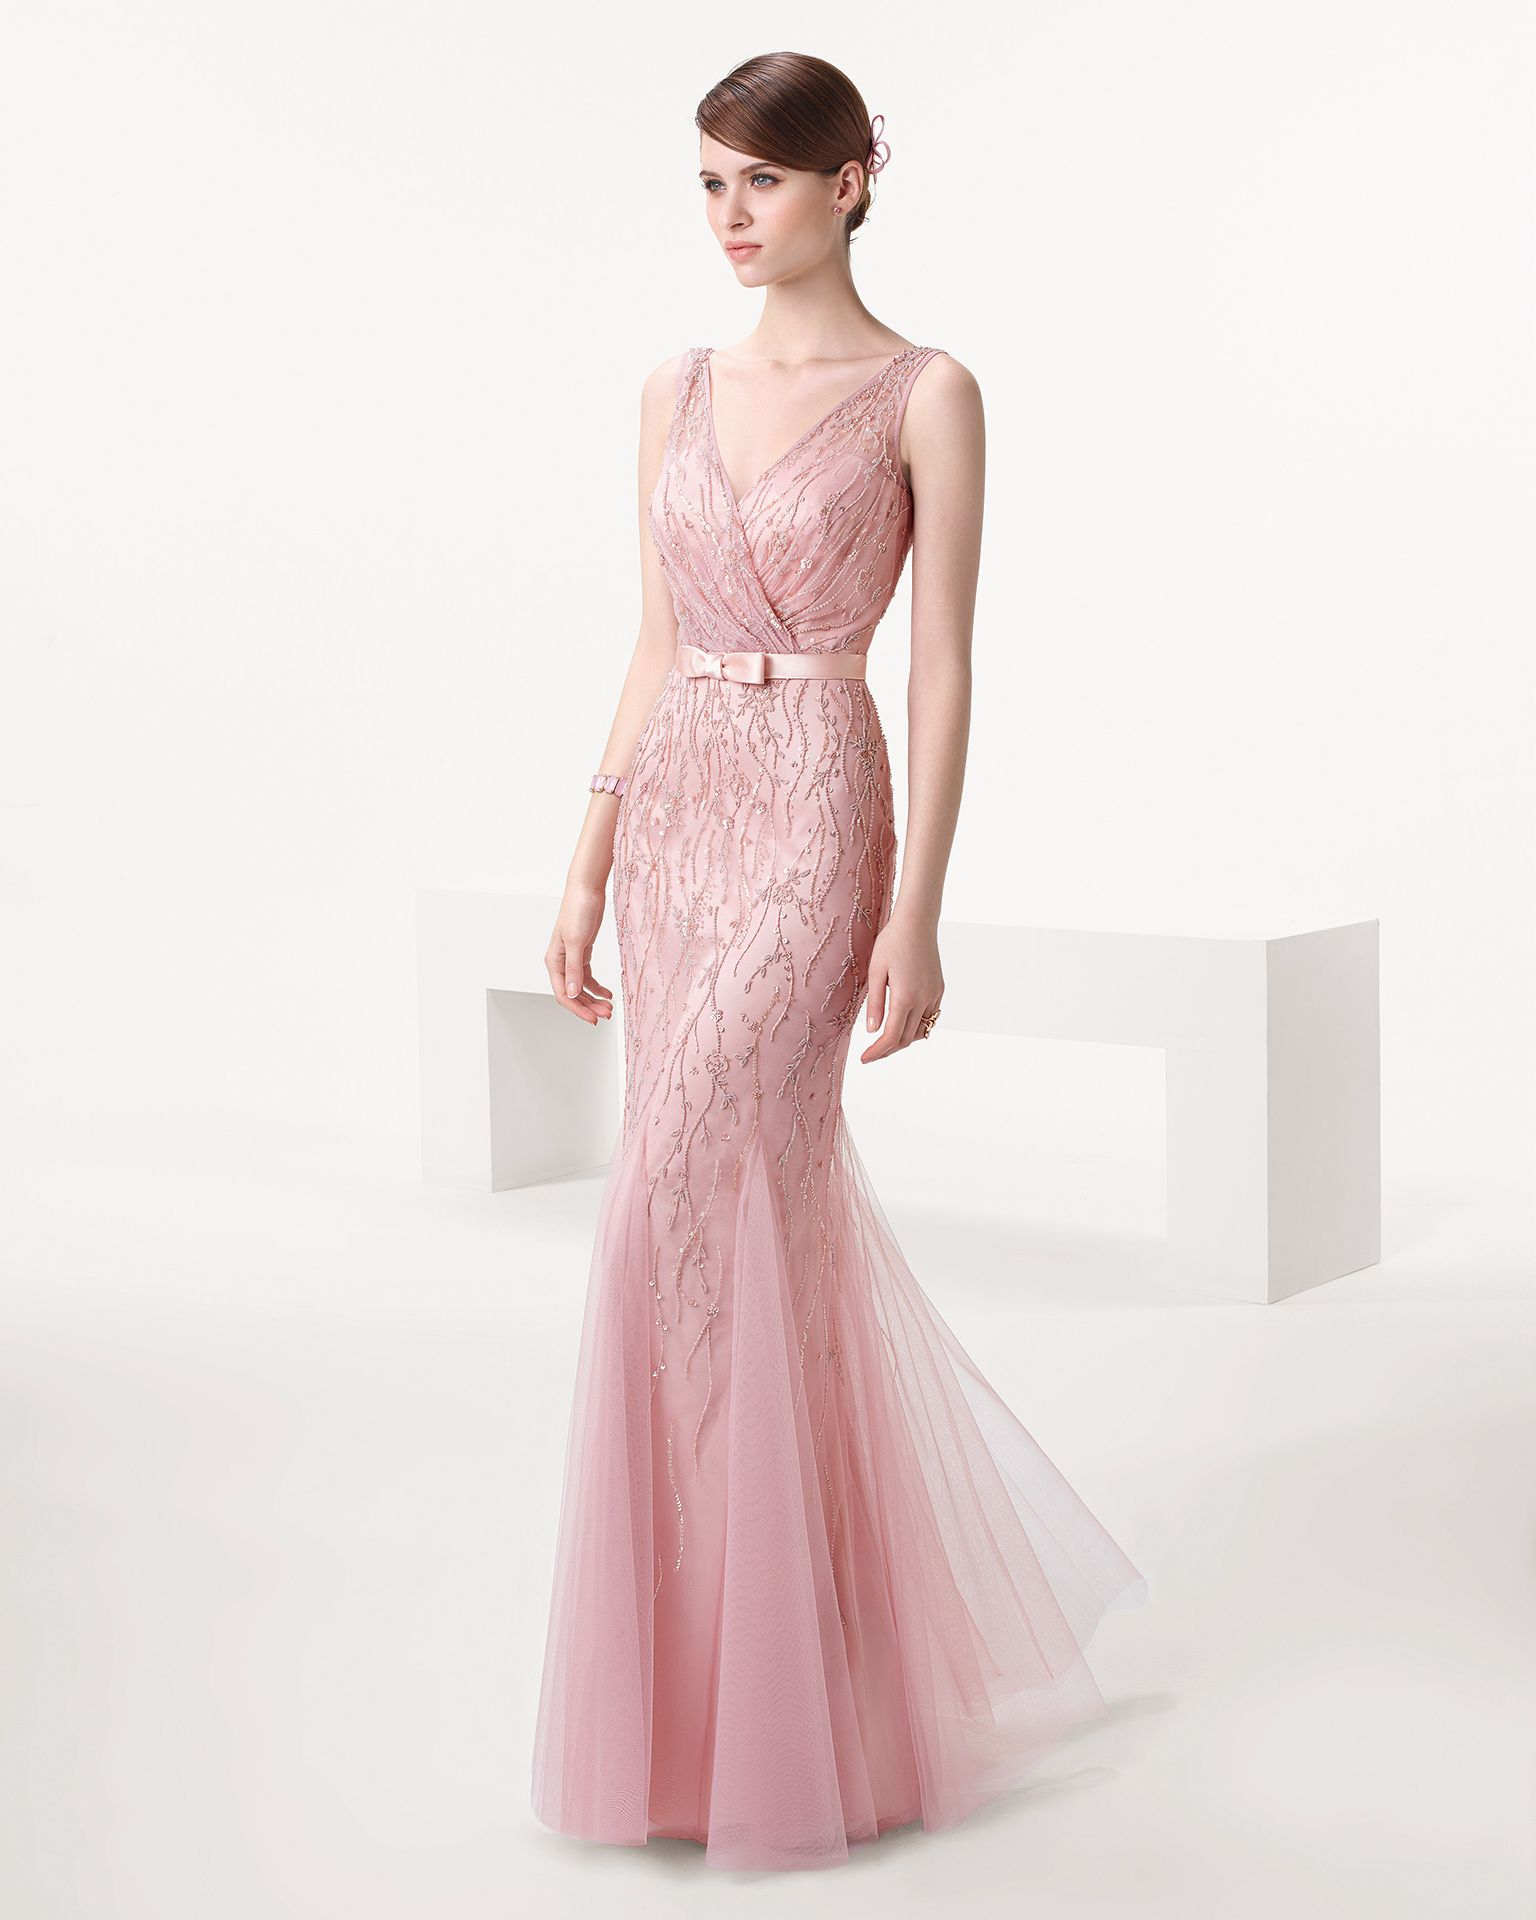 Blush Beaded Wedding Gown With Belt Rose Quartz Hued